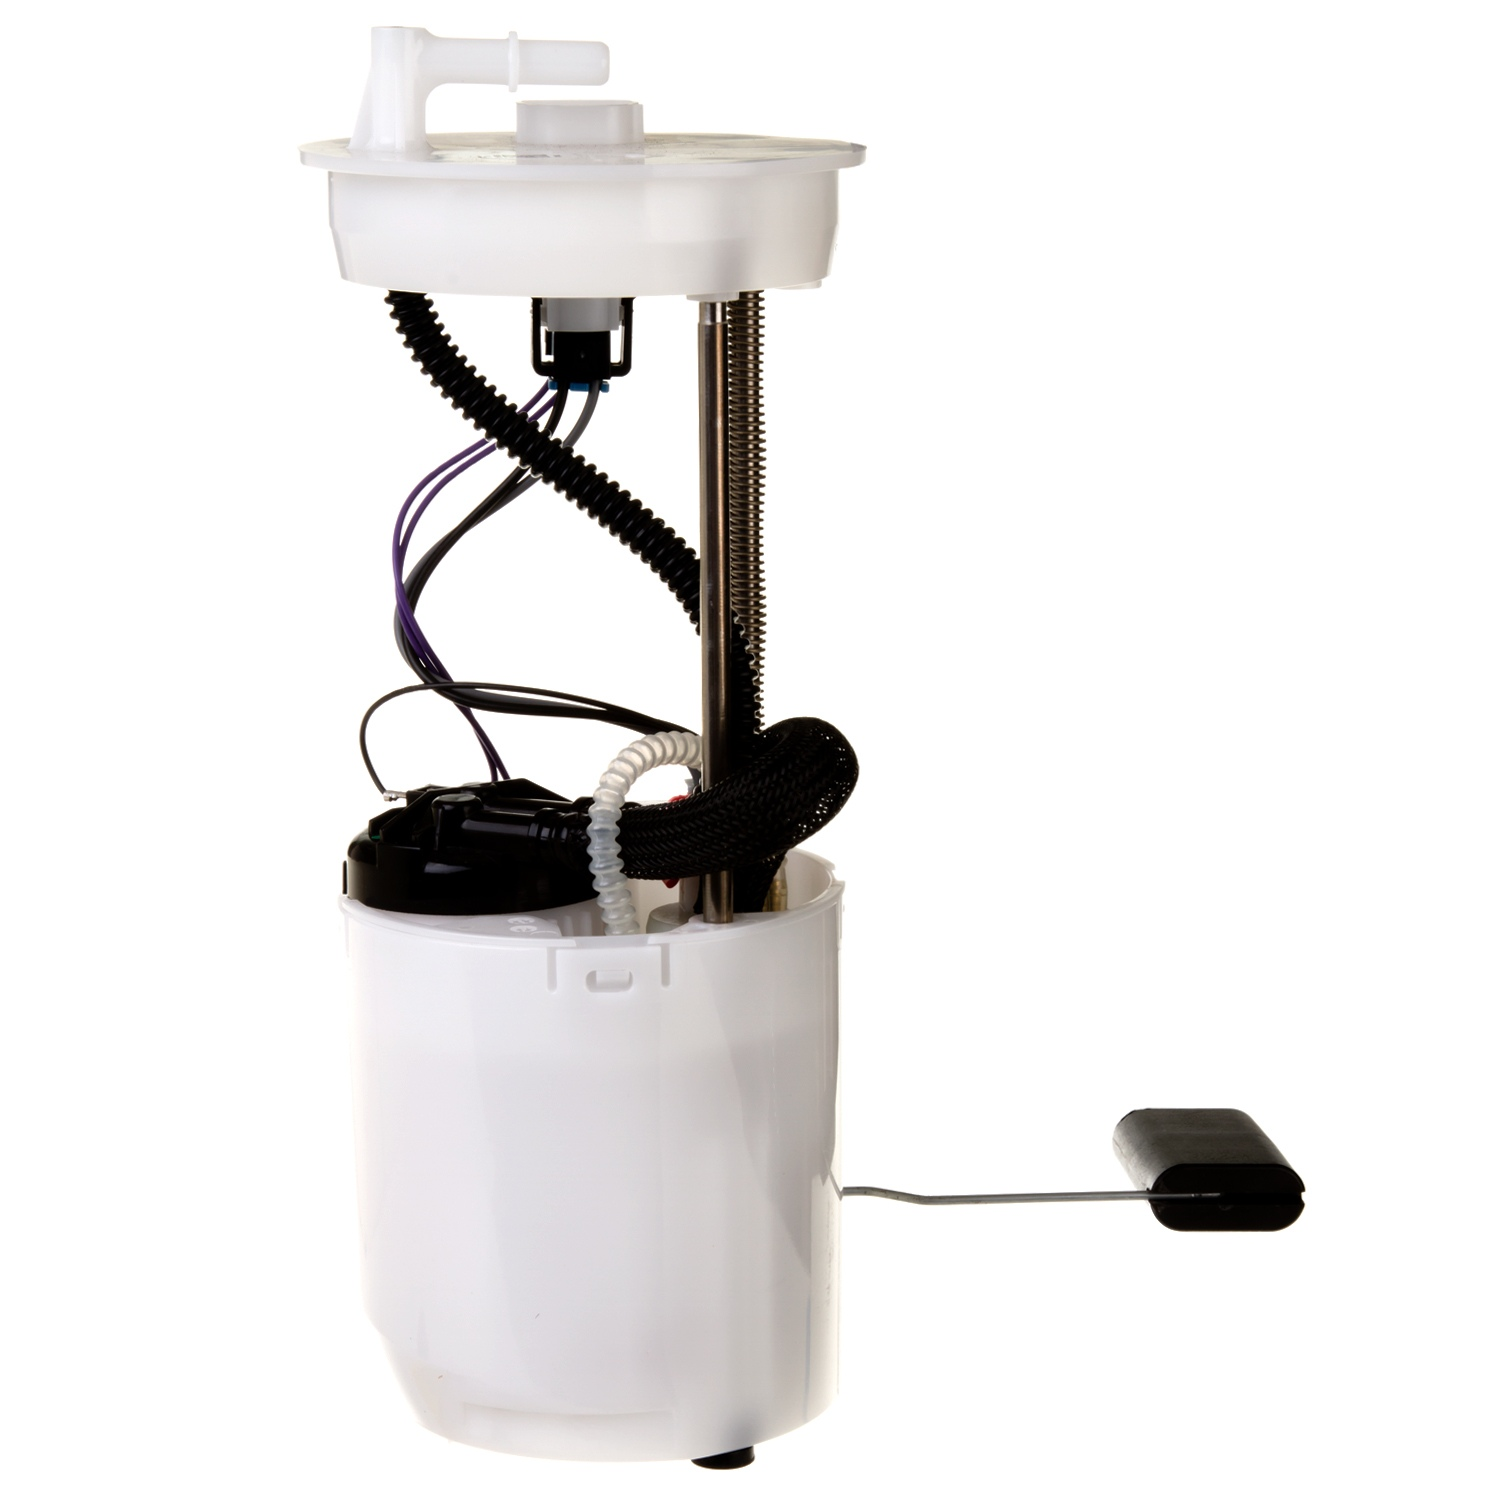 DELPHI - Fuel Pump Module Assembly - DPH FG1042